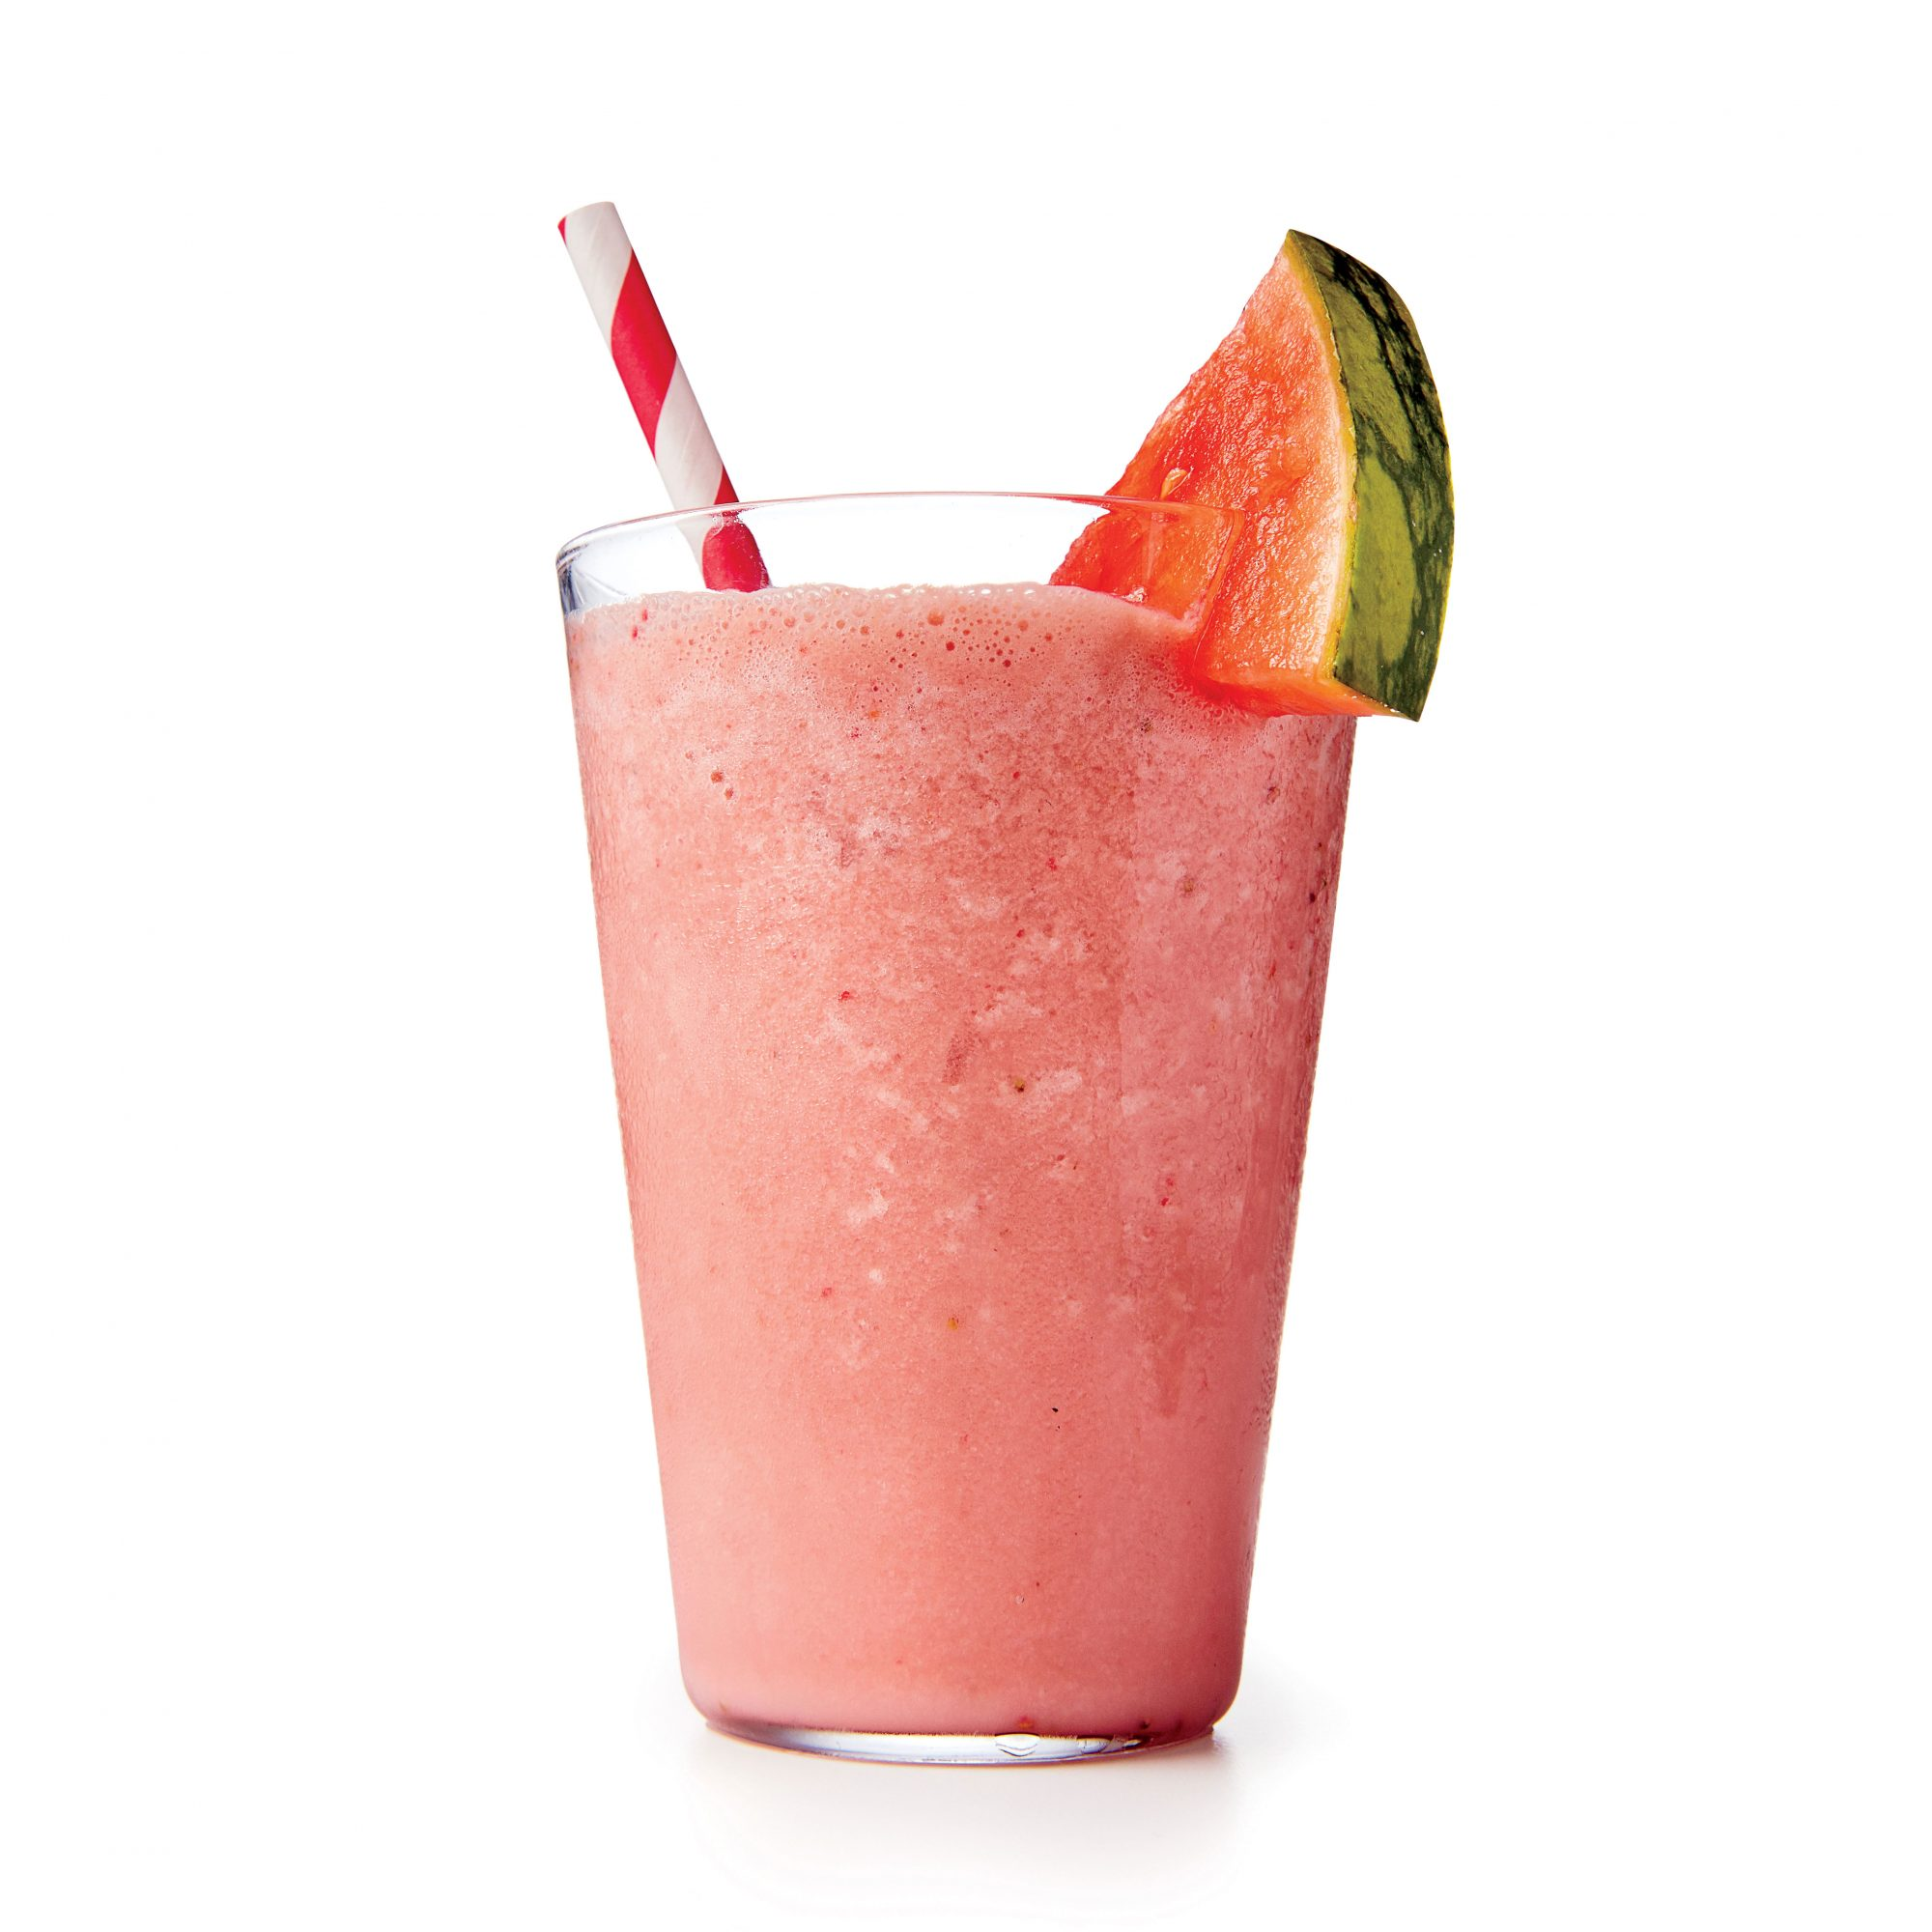 Watermelon Smoothies Recipe Southern Living,Veggie Burger Brands